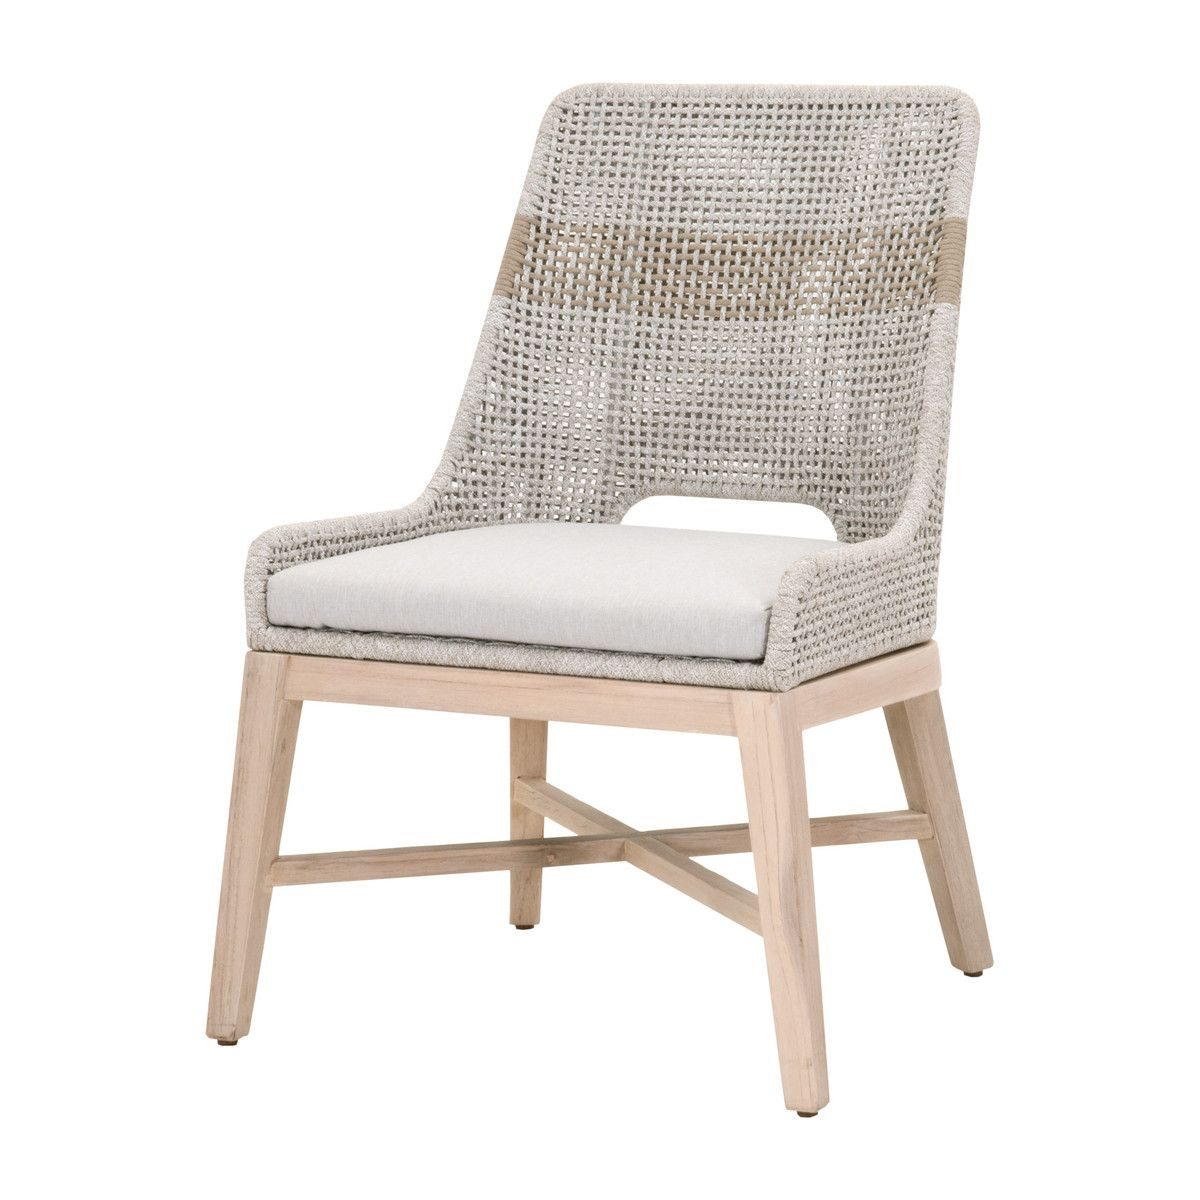 Nile Outdoor Dining Chairs, Taupe - Set of 2